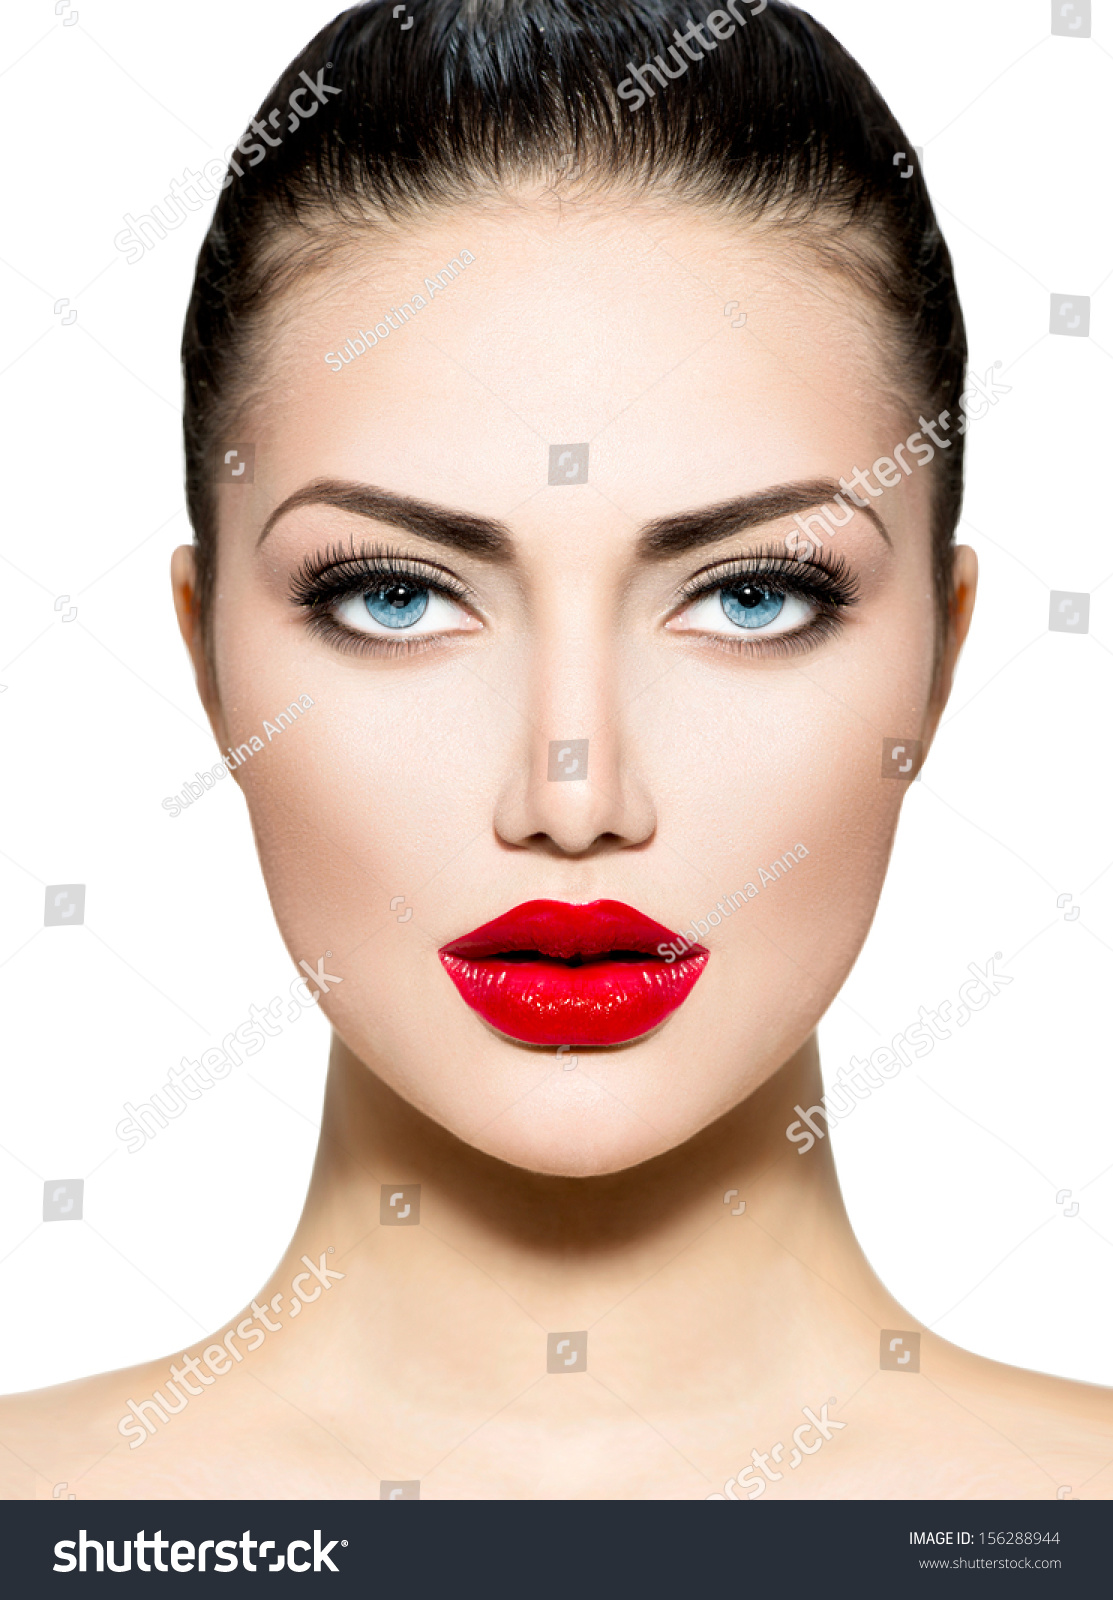 Professional Makeup Artist 11 01 11: Beauty Woman Portrait. Professional Makeup For Brunette